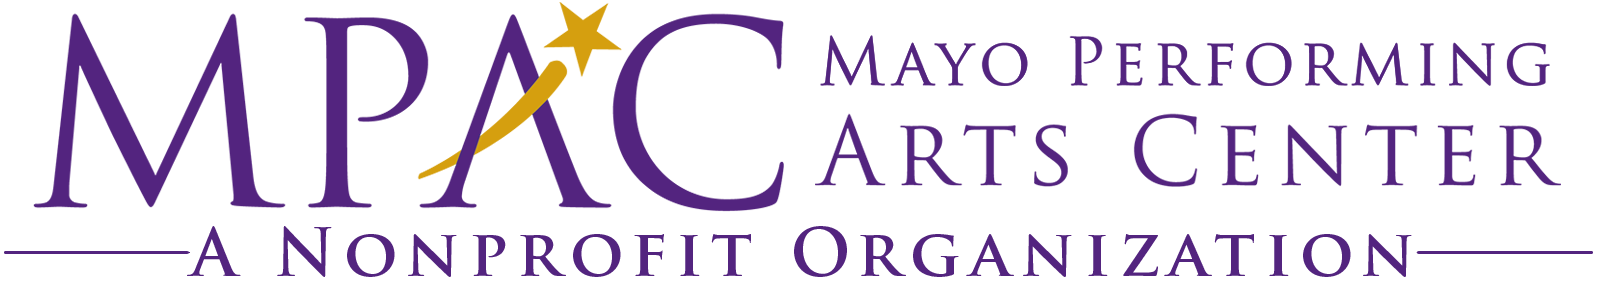 Mayo Performing Arts Center - A Nonprofit Organization